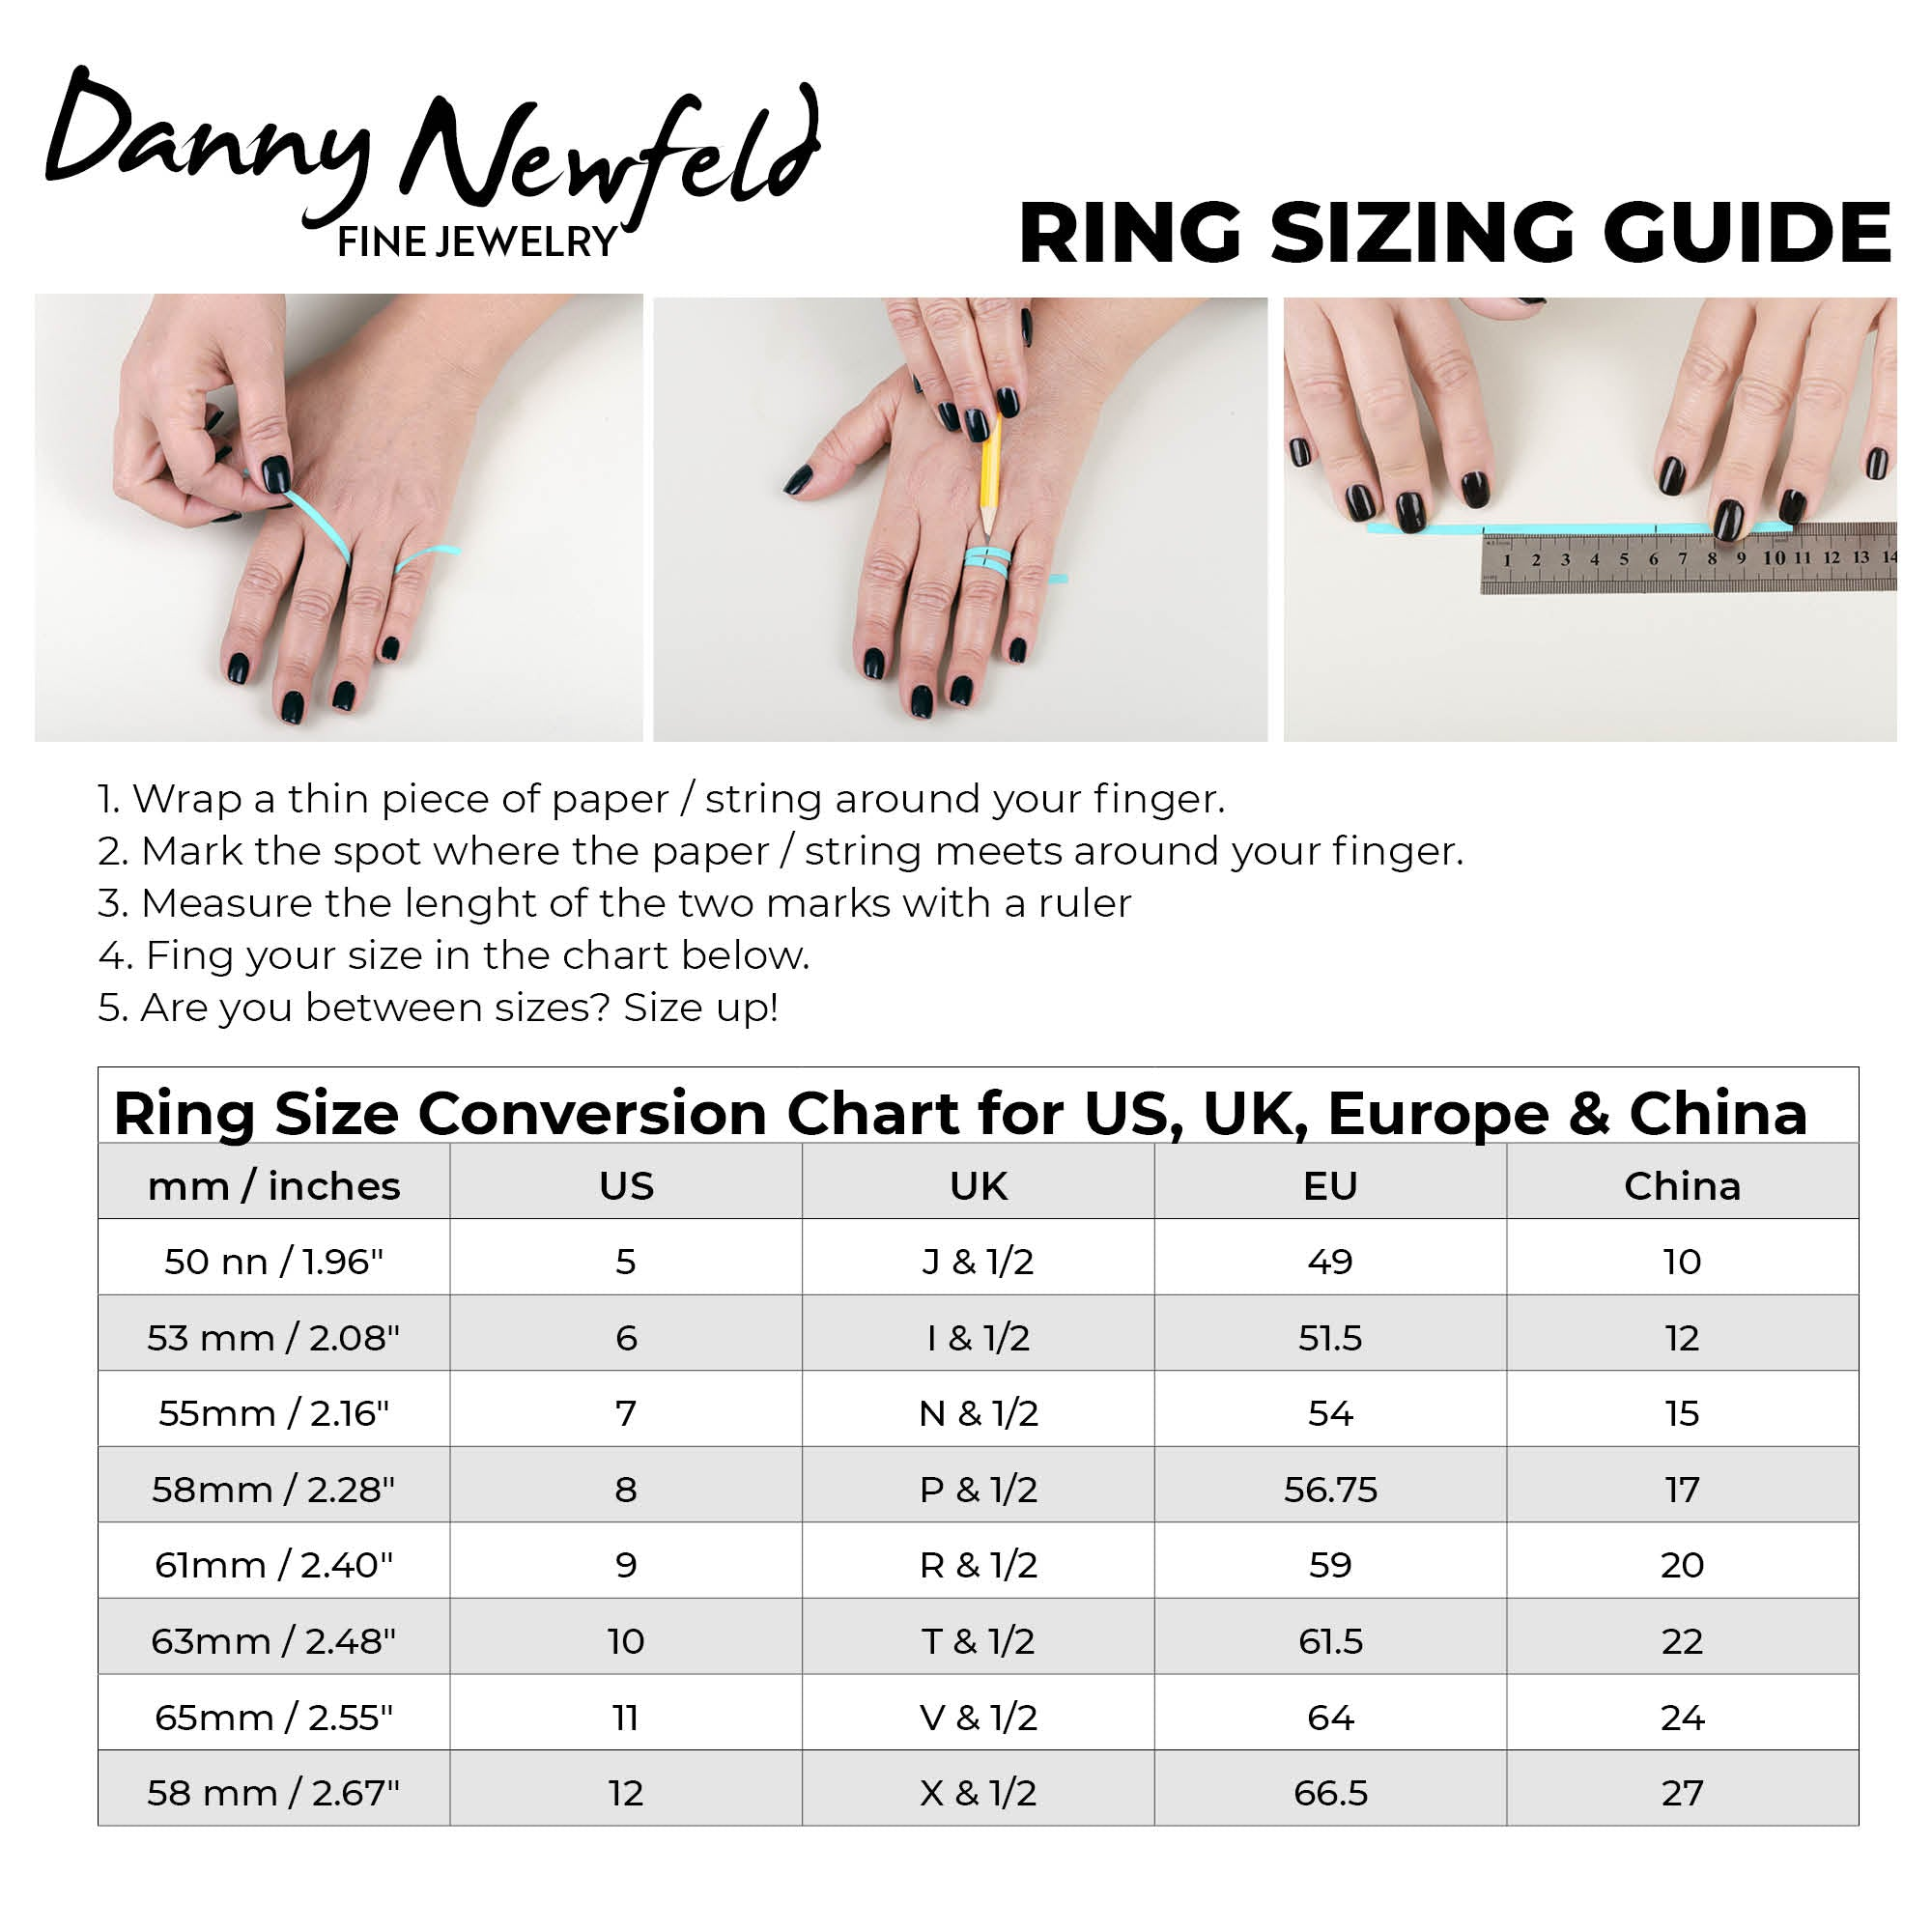 Danny Newfeld Ring Sizing Guide